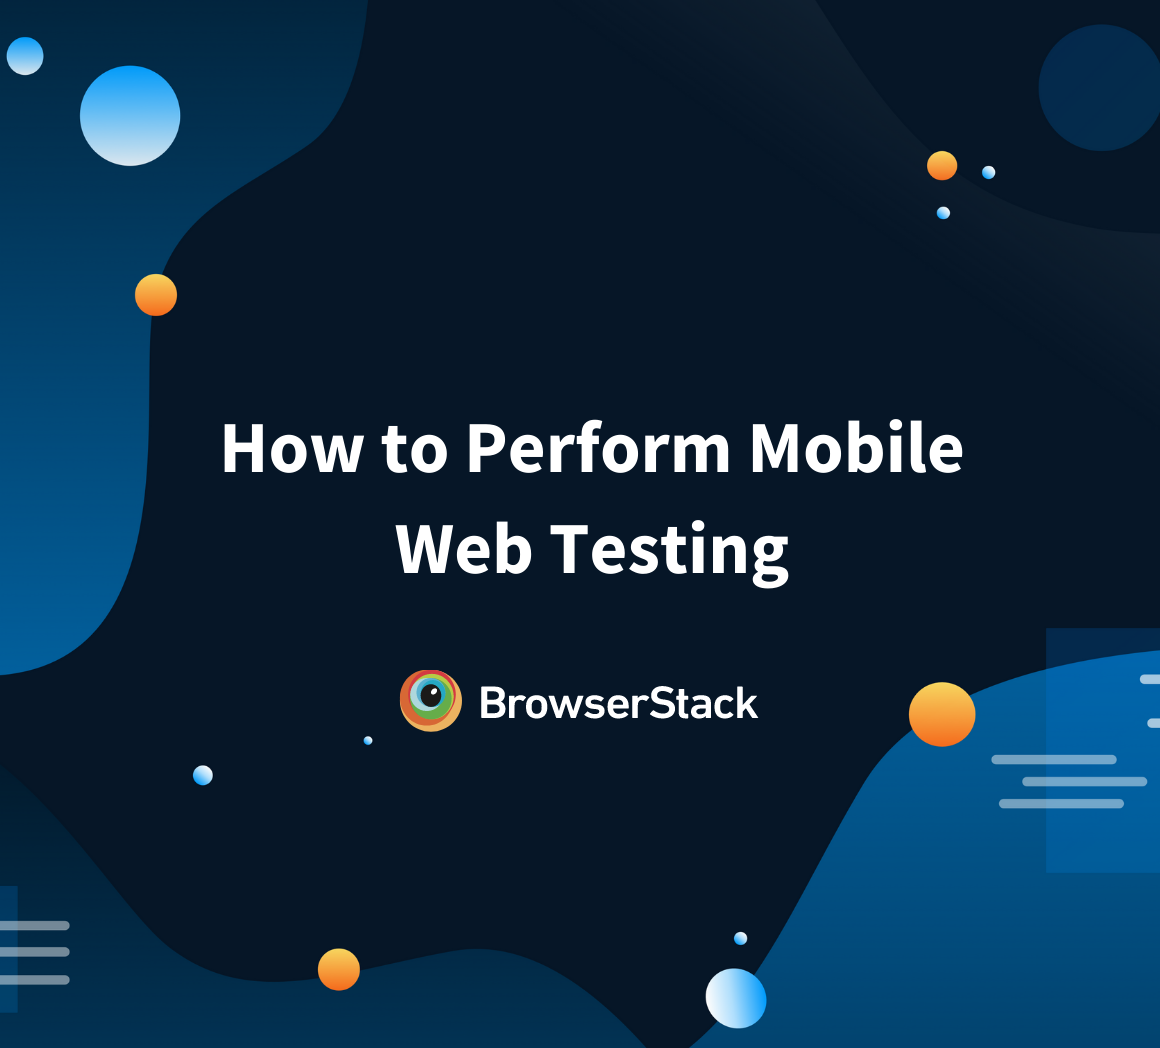 How to Perform Mobile Web Testing